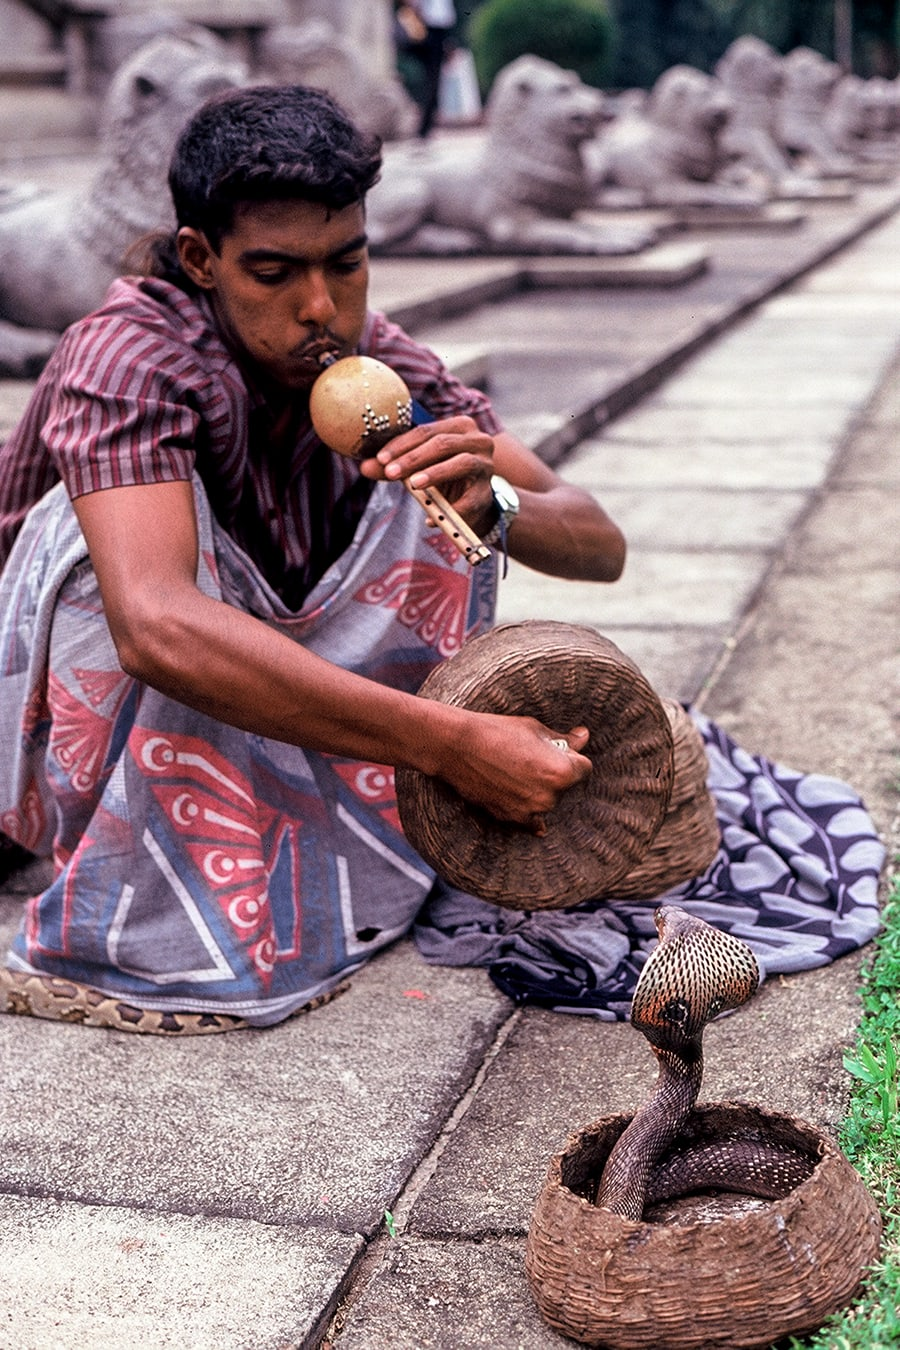 Snake charmer on the streets of Colombo, Sri Lanka.